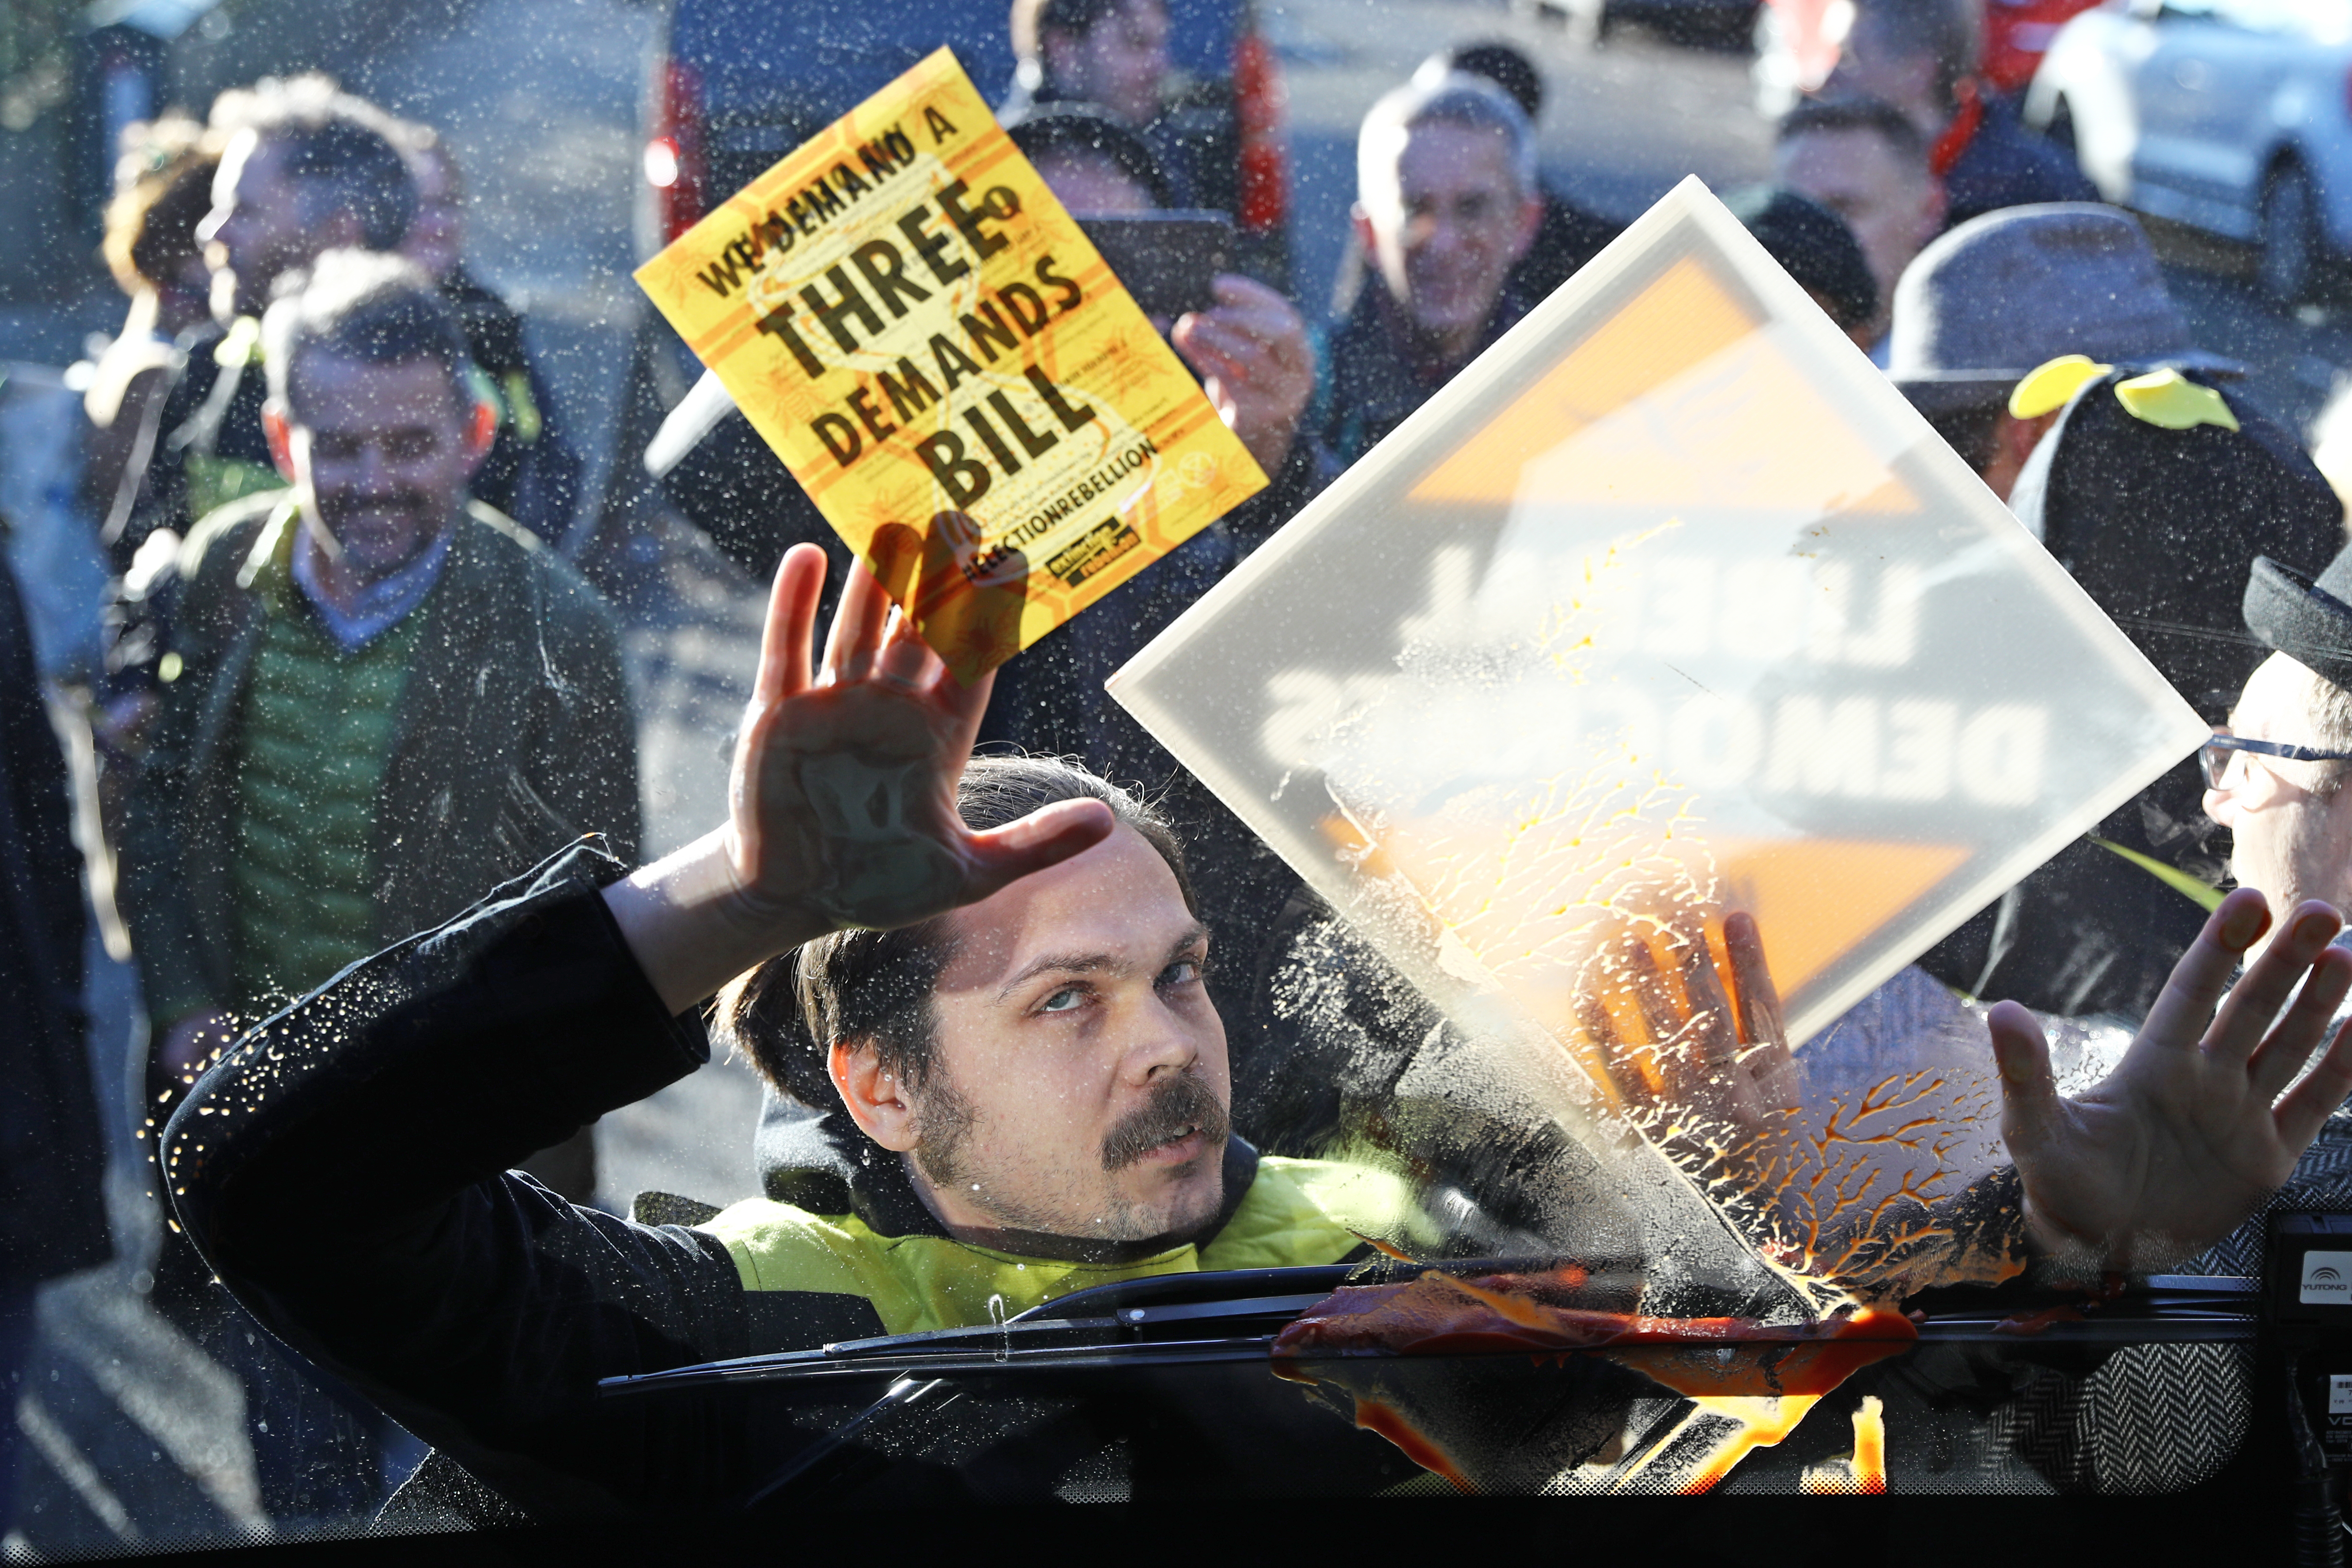 Extinction Rebellion protesters dressed as bees glue themselves to Liberal Democrat Leader Jo Swinson's battle bus during a visit to Knights Youth Centre in London, while on the General Election campaign trail.